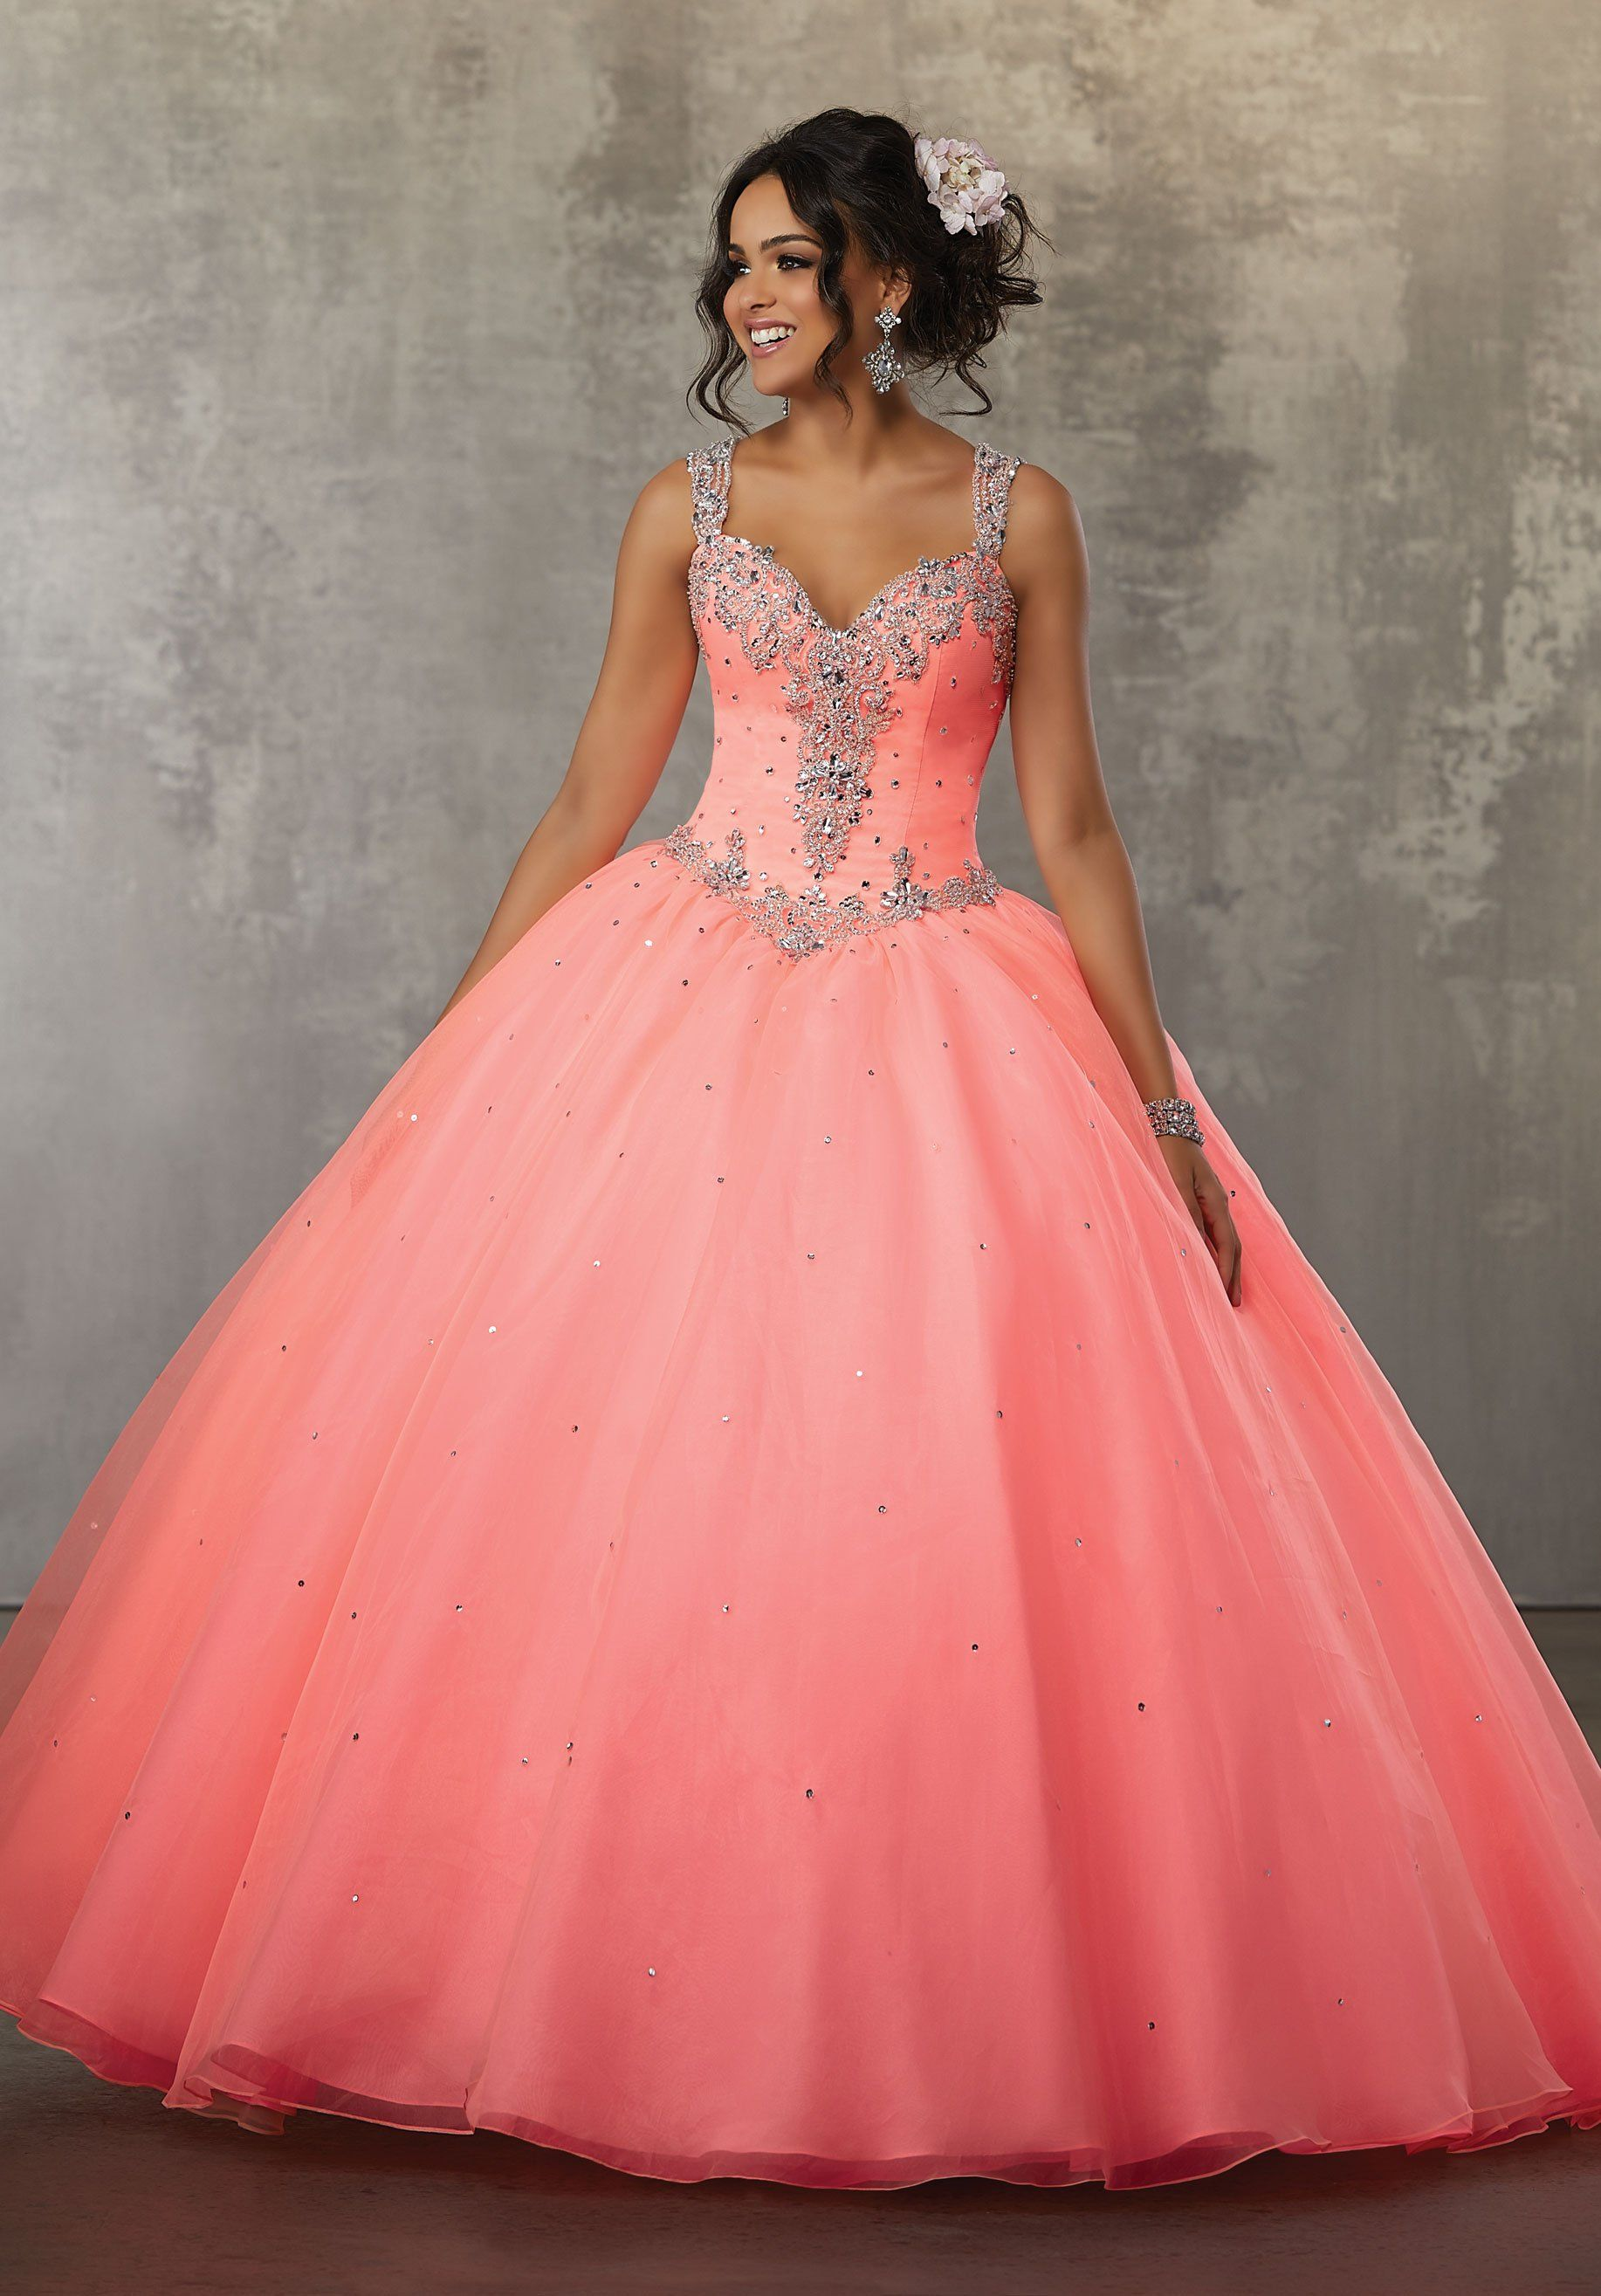 Quinceanera Dress 60037 Valencia Collection | 15 dresses | Pinterest ...